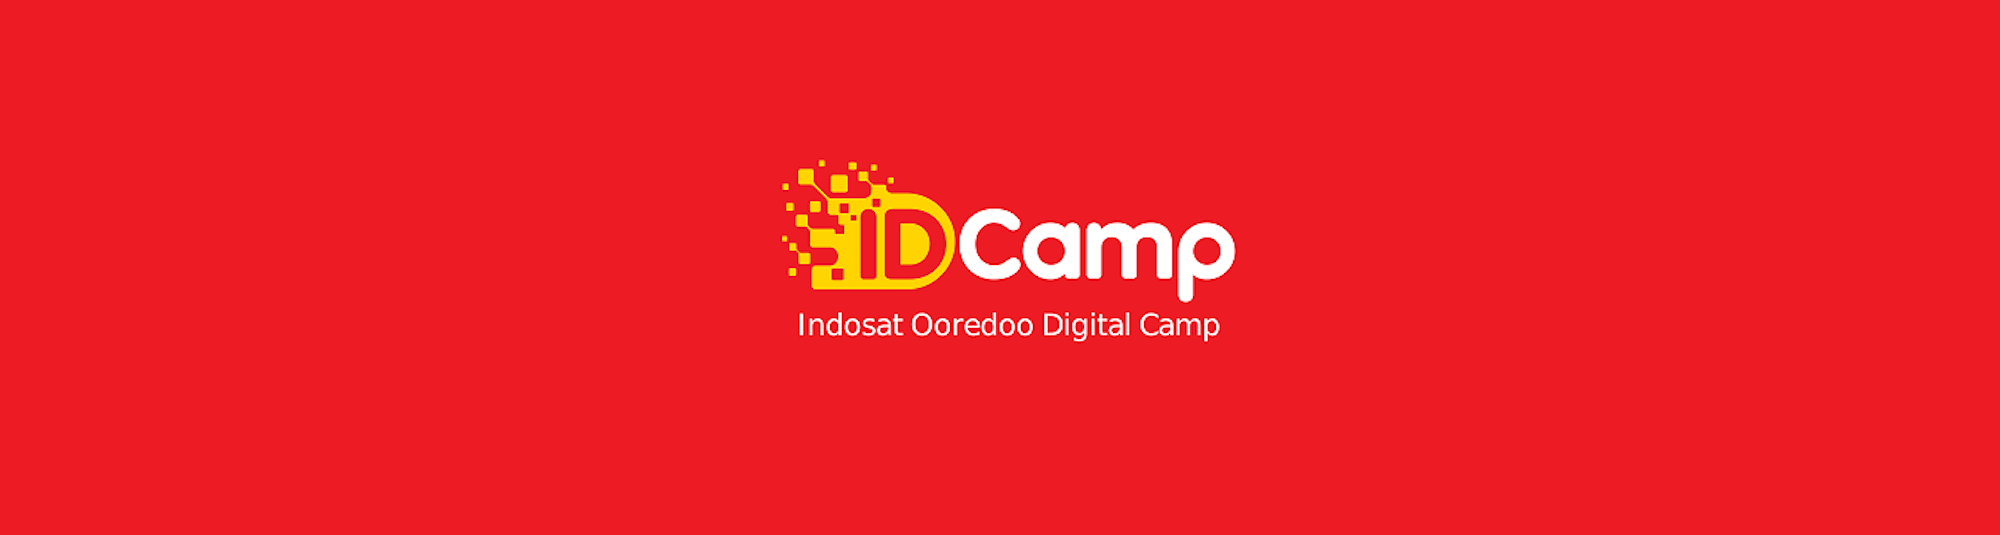 Indosat Ooredoo Digital Camp (IDCamp) Developers Meetup - Bogor